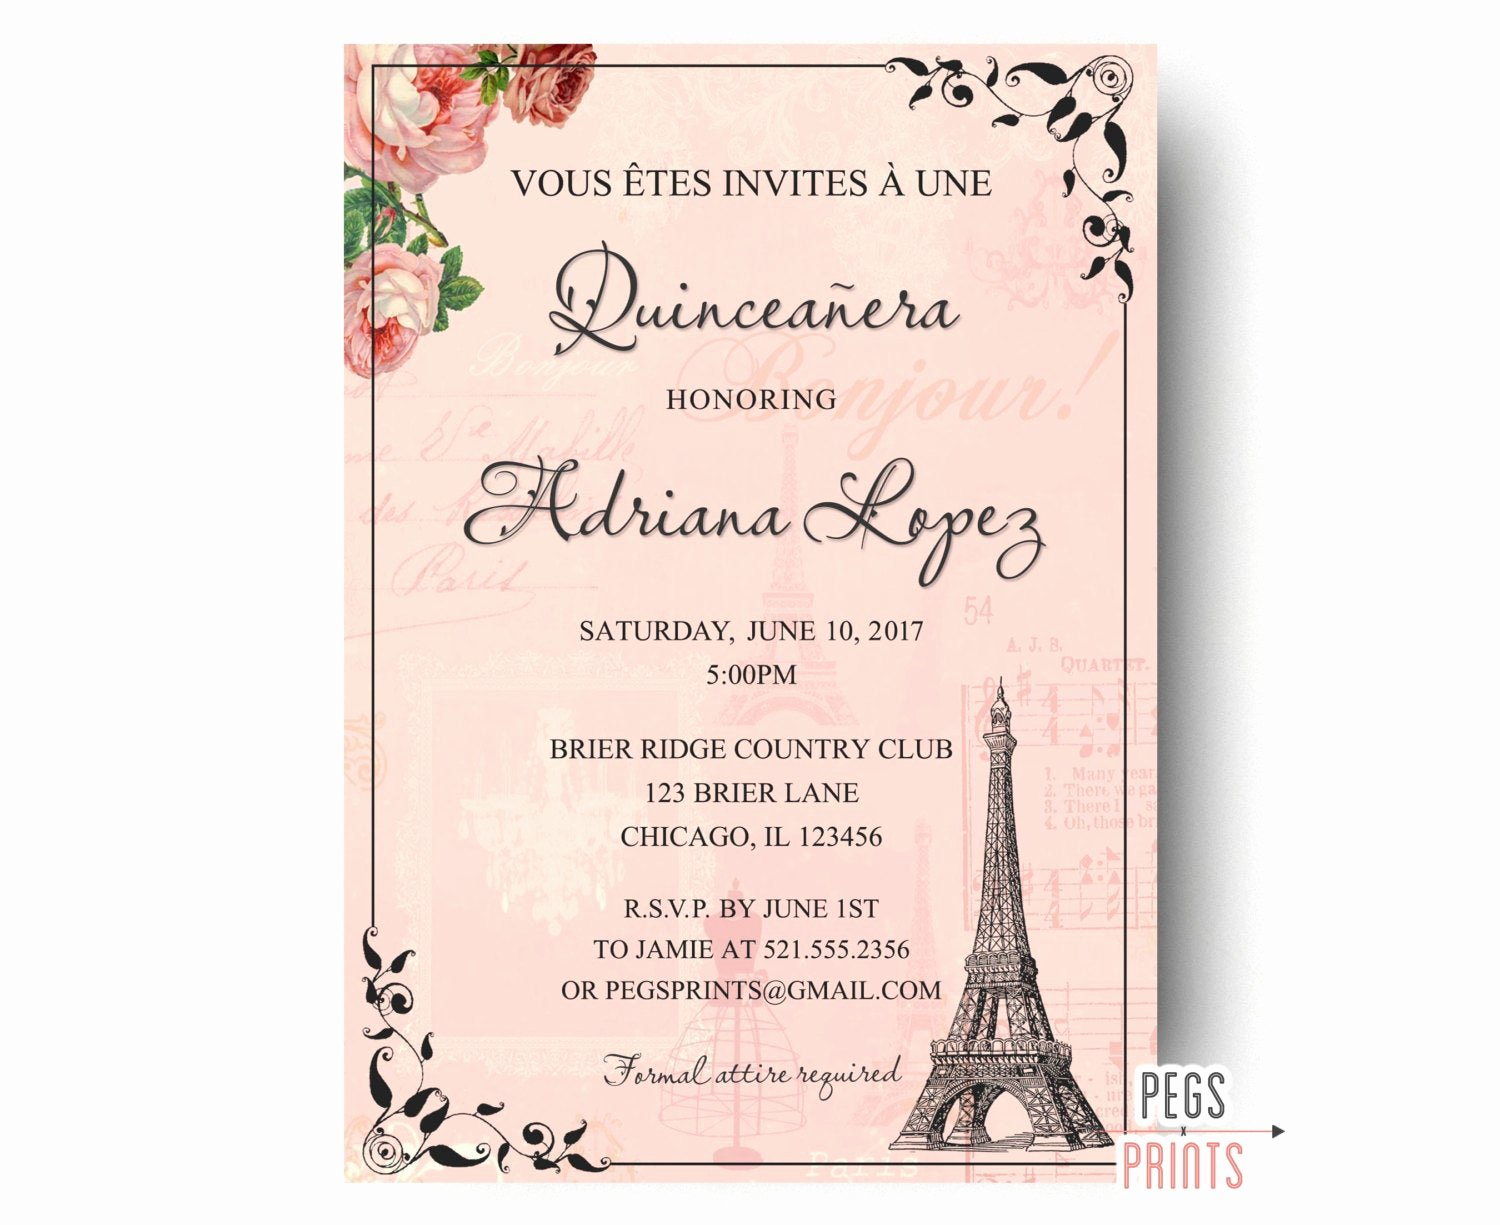 Quinceanera Invitation Templates Free New Paris Quinceanera Invitation Quinceanera Invitation